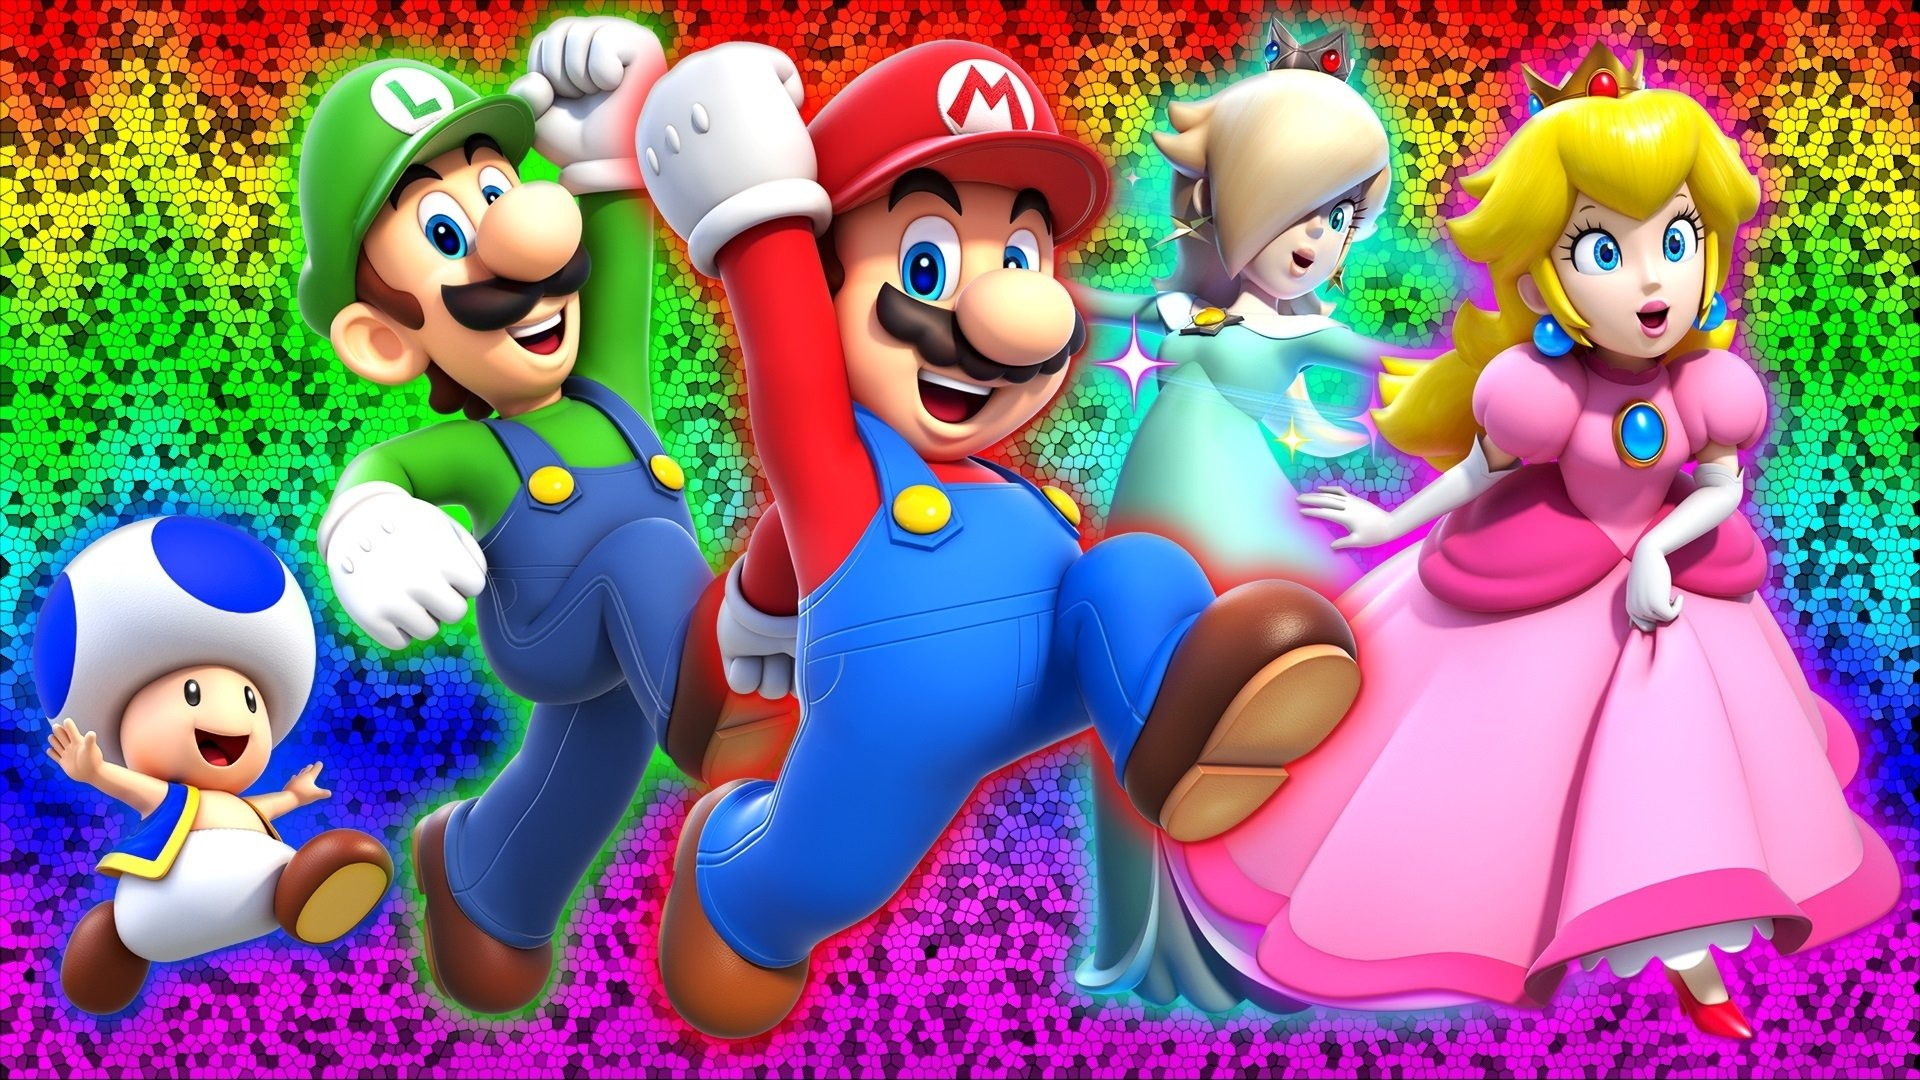 Super Mario 3d World Hd Wallpaper Background Image 1920x1080